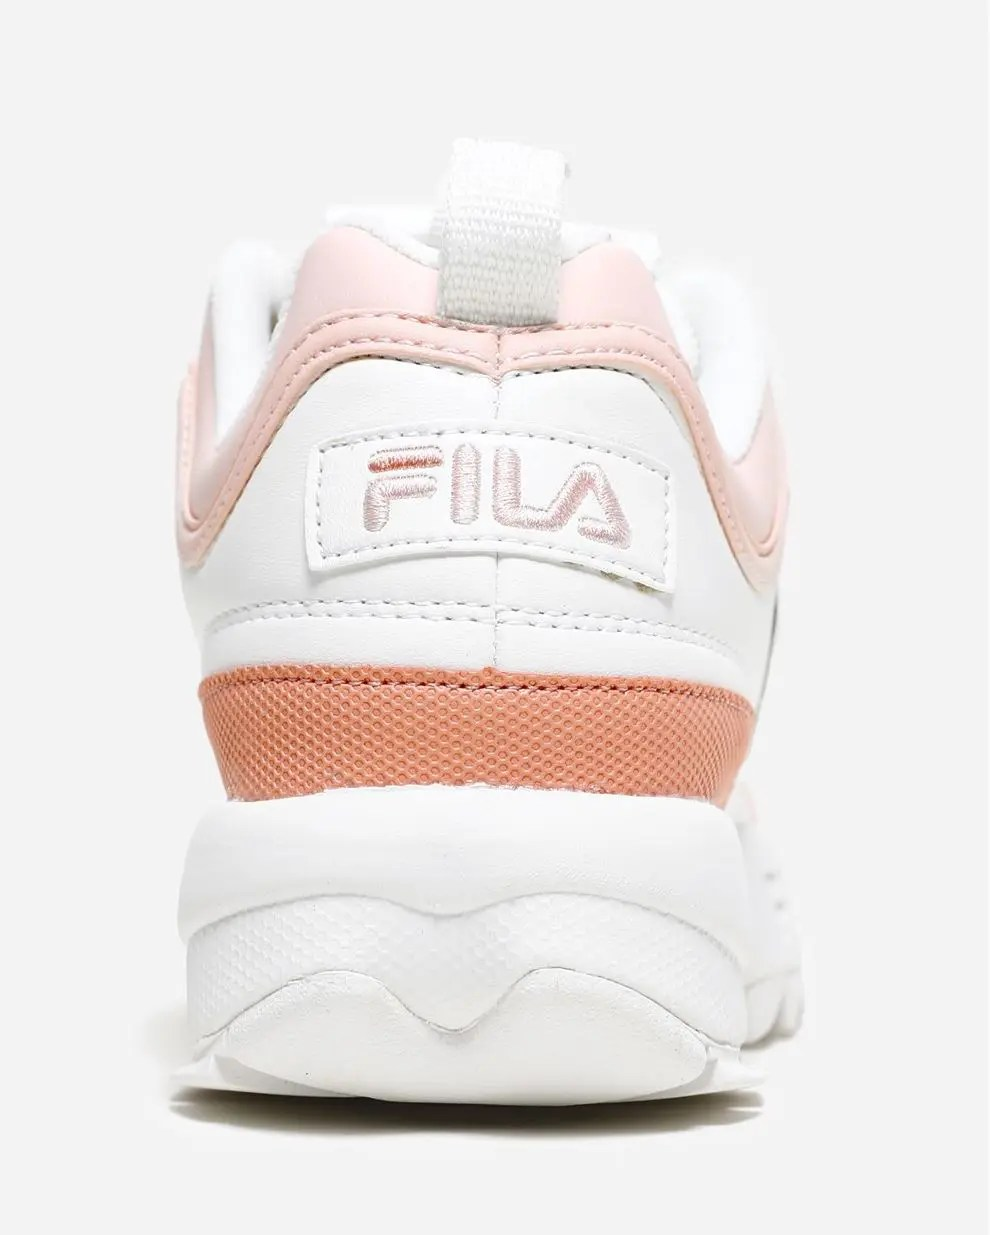 FILA Disruptor CB Low Marshmallow Salmon-3